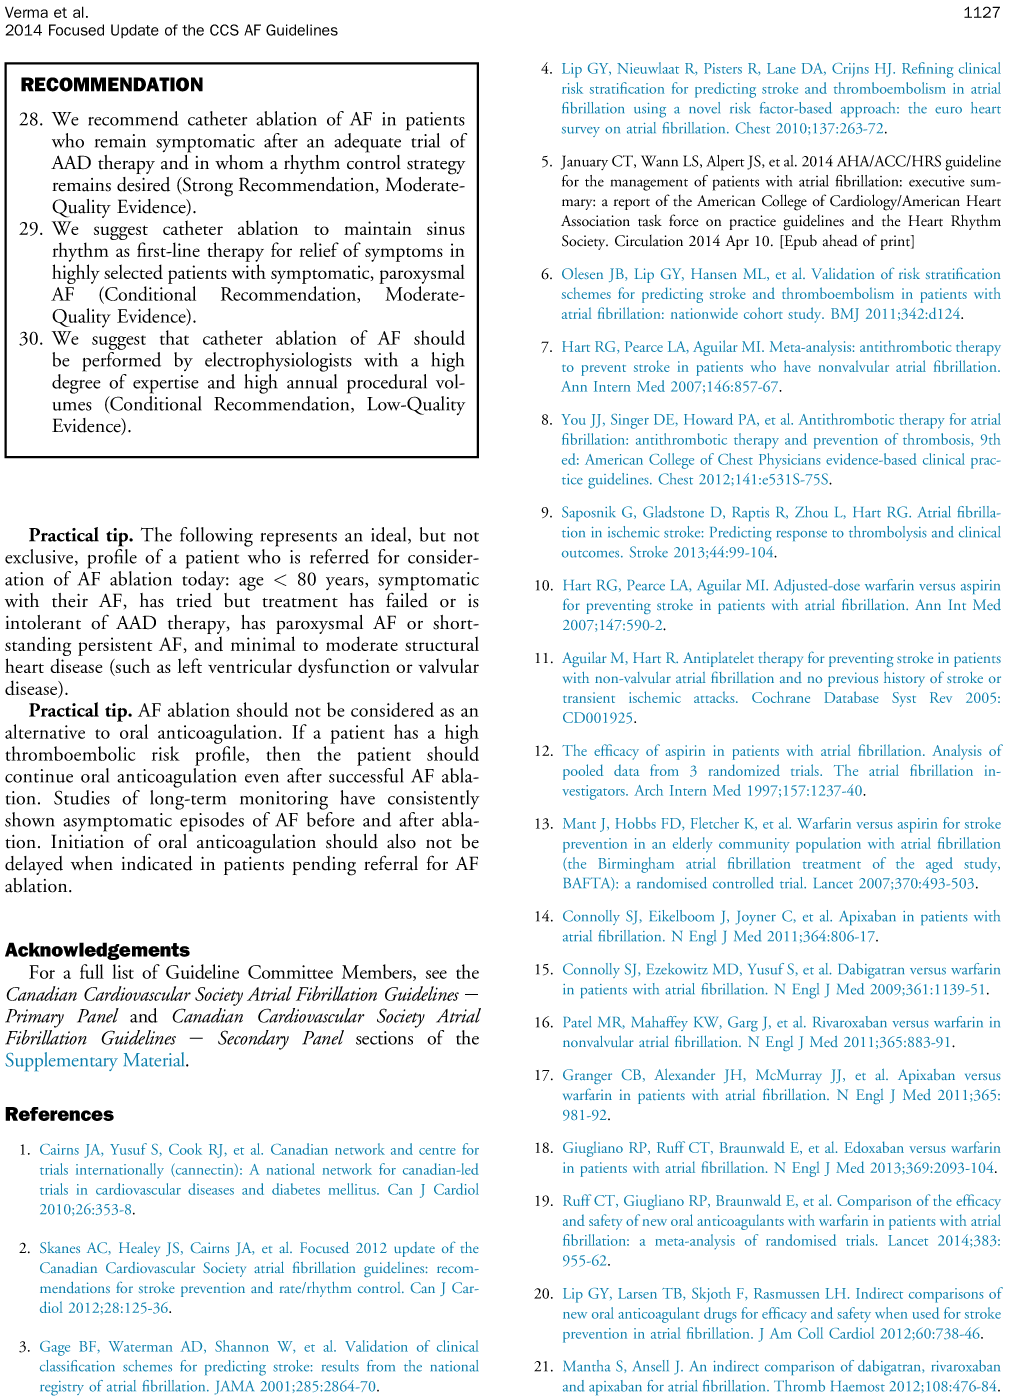 verma panel recommendation for prevention of